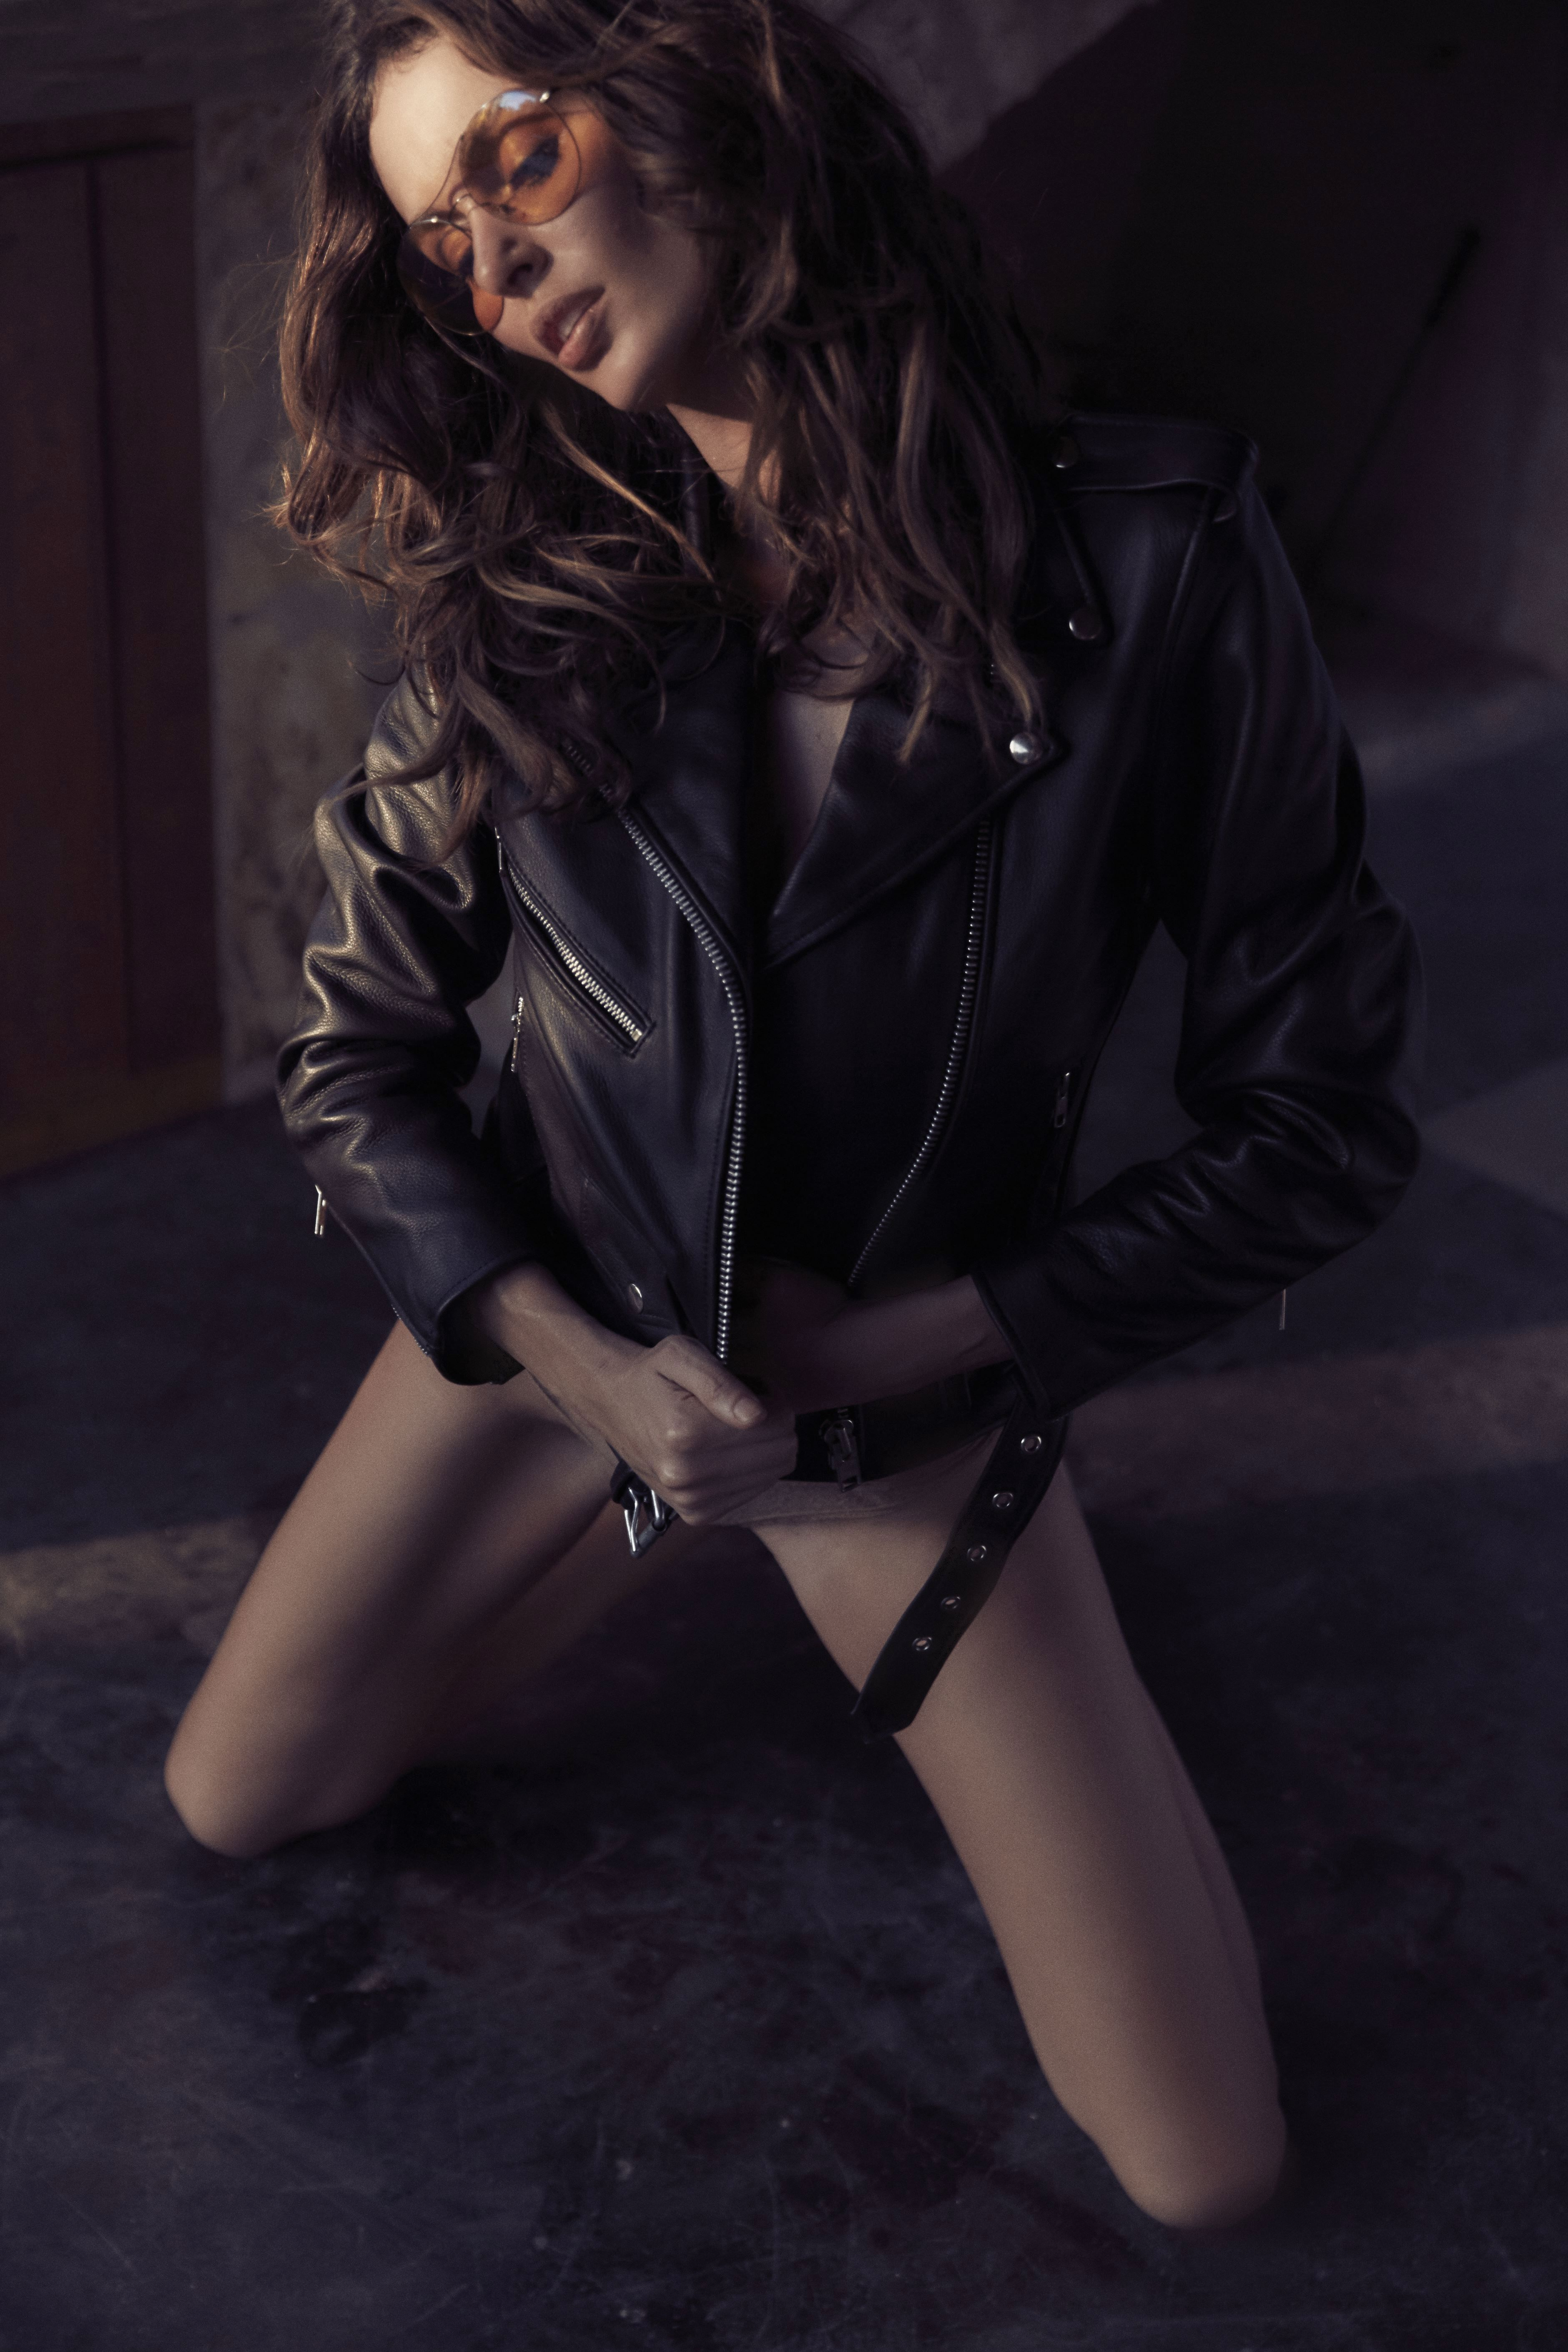 Nicole trunfio understated leather 2015 campaign 2015 by harper smith hq photo shoot - 2019 year